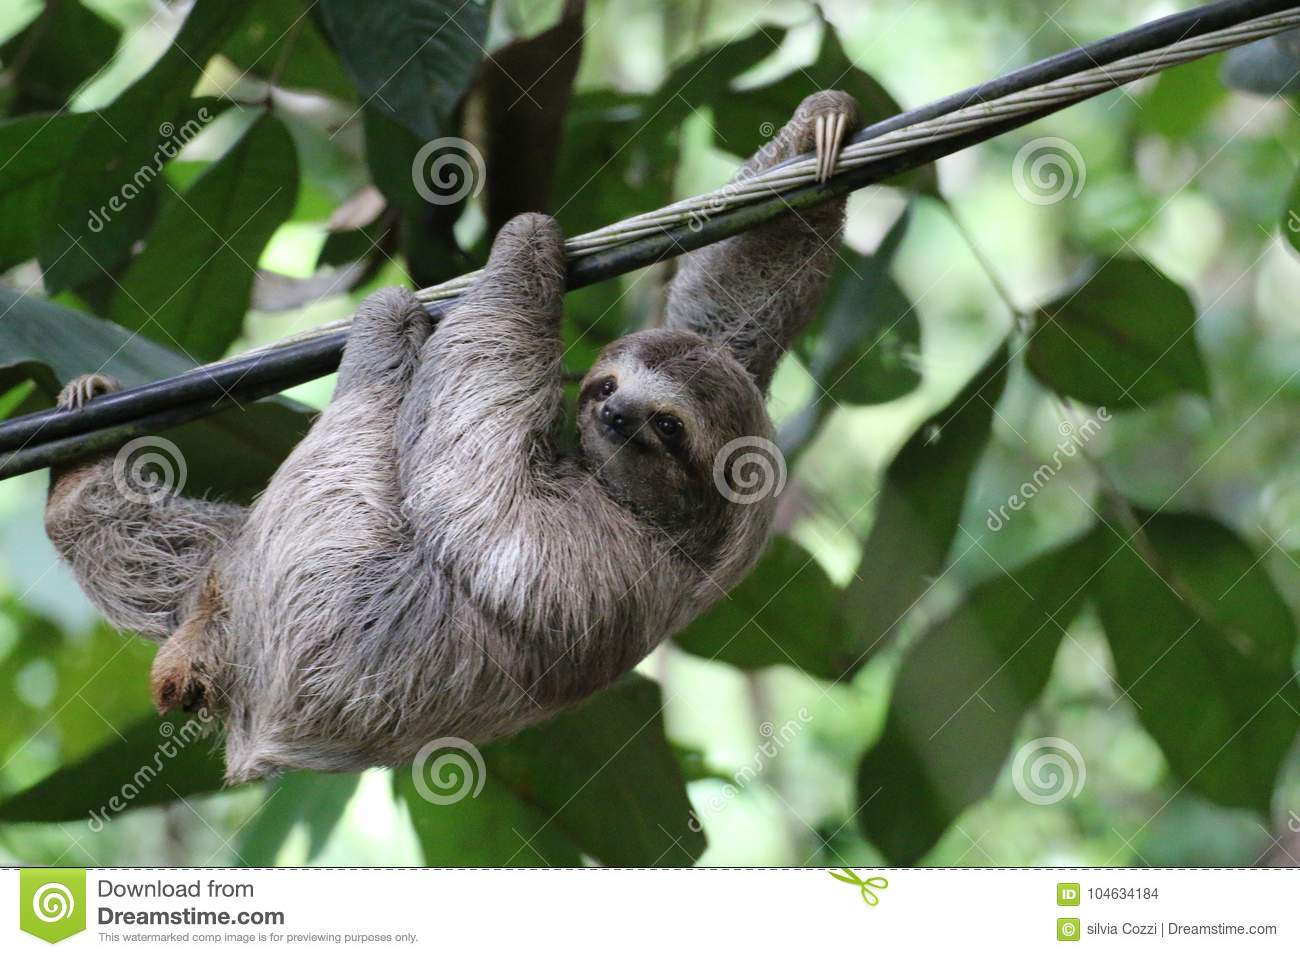 Young Sloth hanging on a cable, Costa Rica